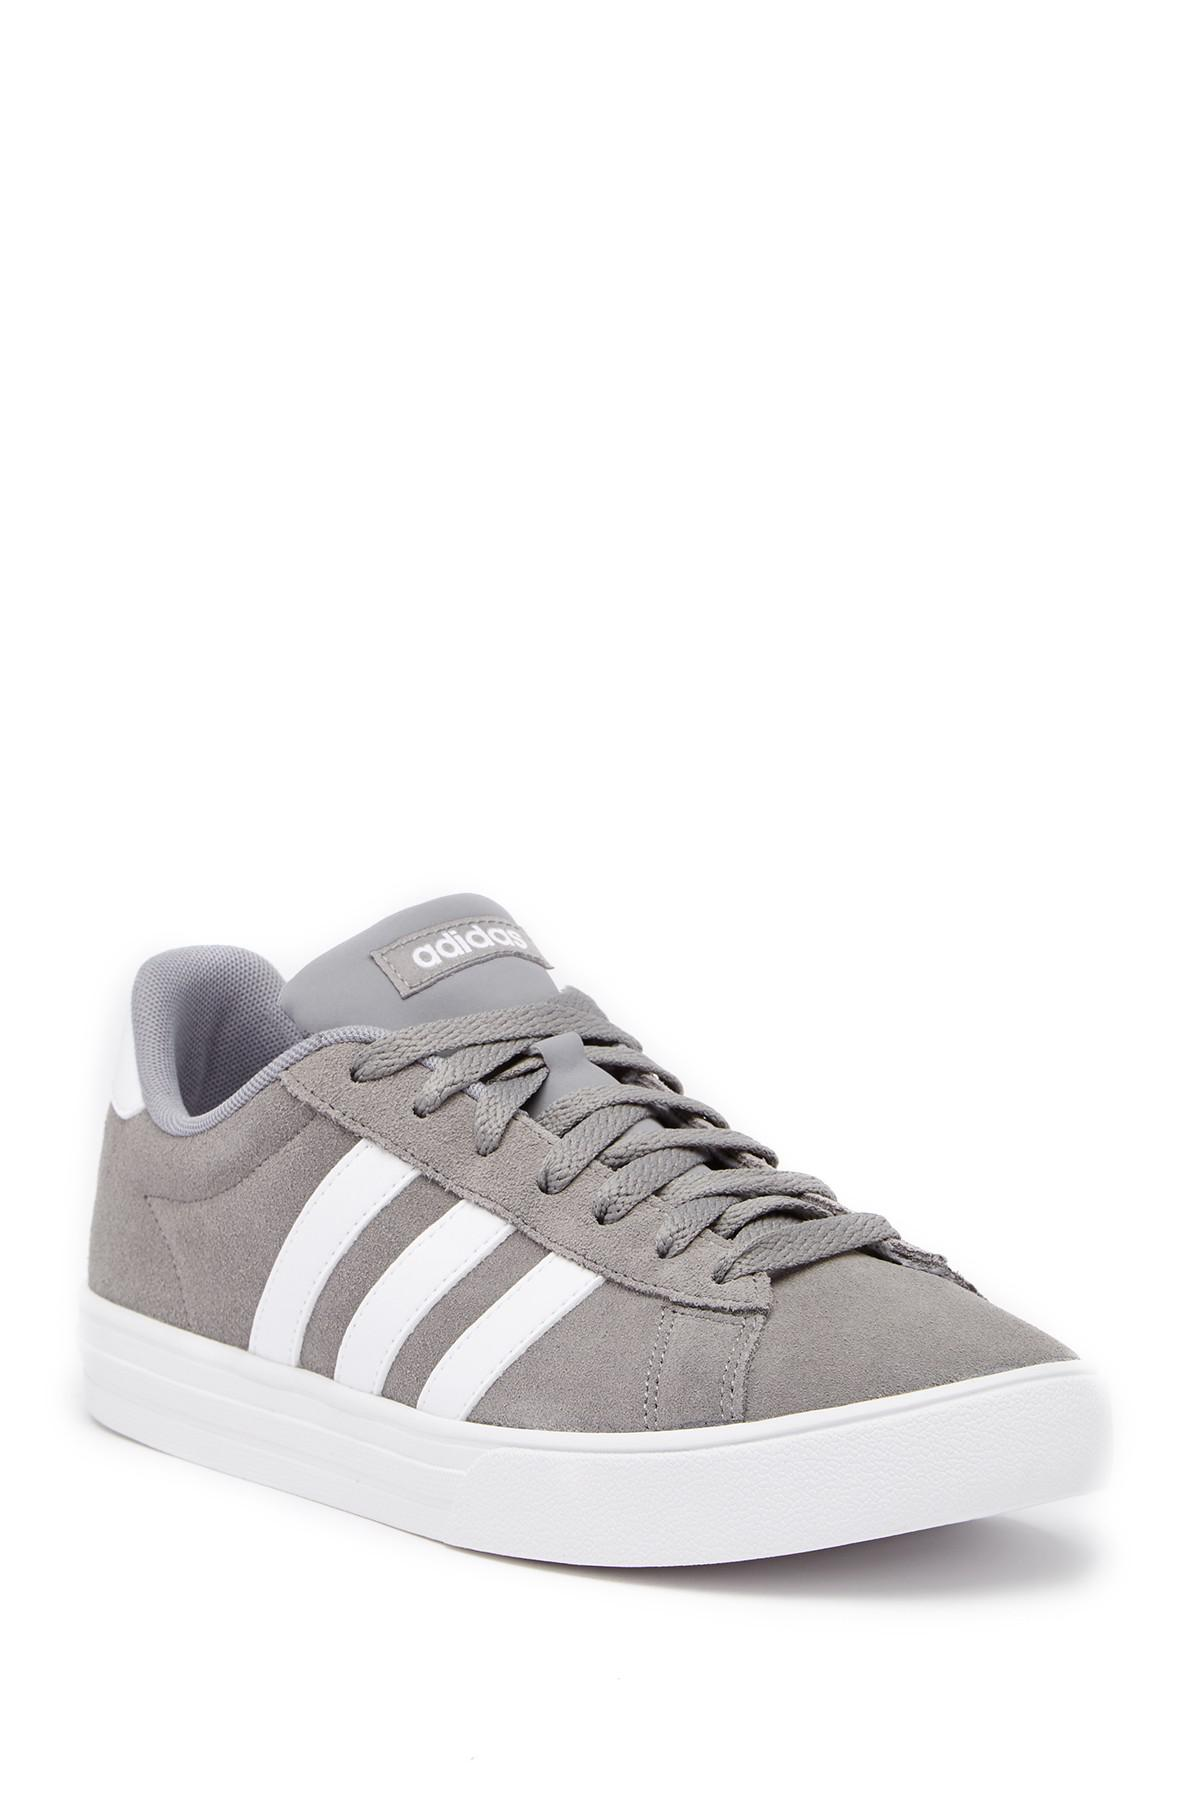 on sale 7d212 00deb Lyst - adidas Daily 2.0 Suede Sneaker for Men